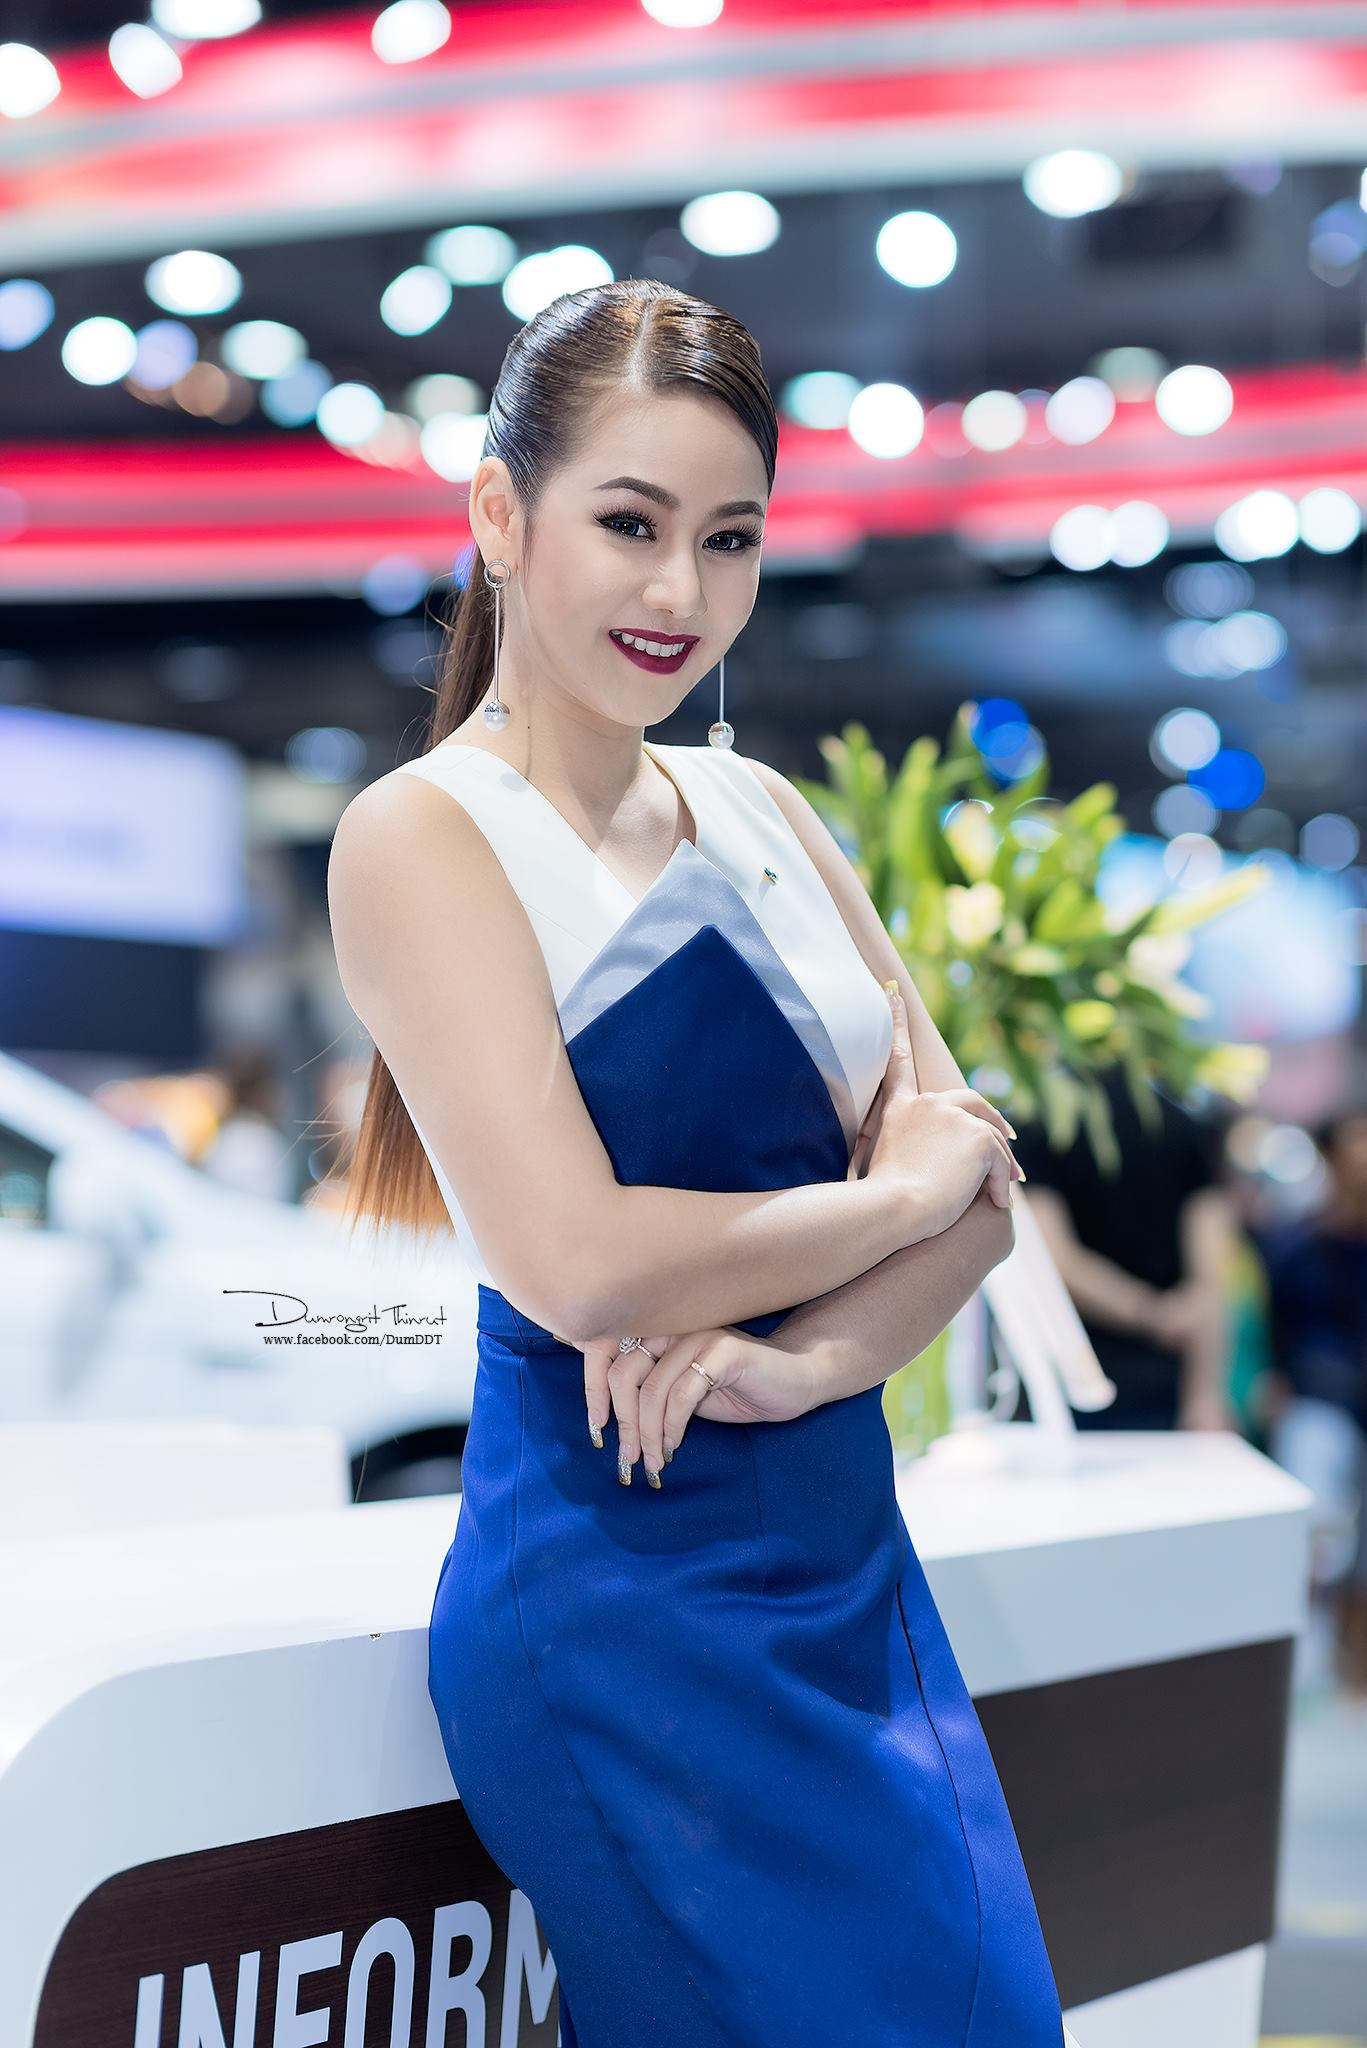 Thailand Motor Expo 2017 by Dumrongrit Dom Thinrut